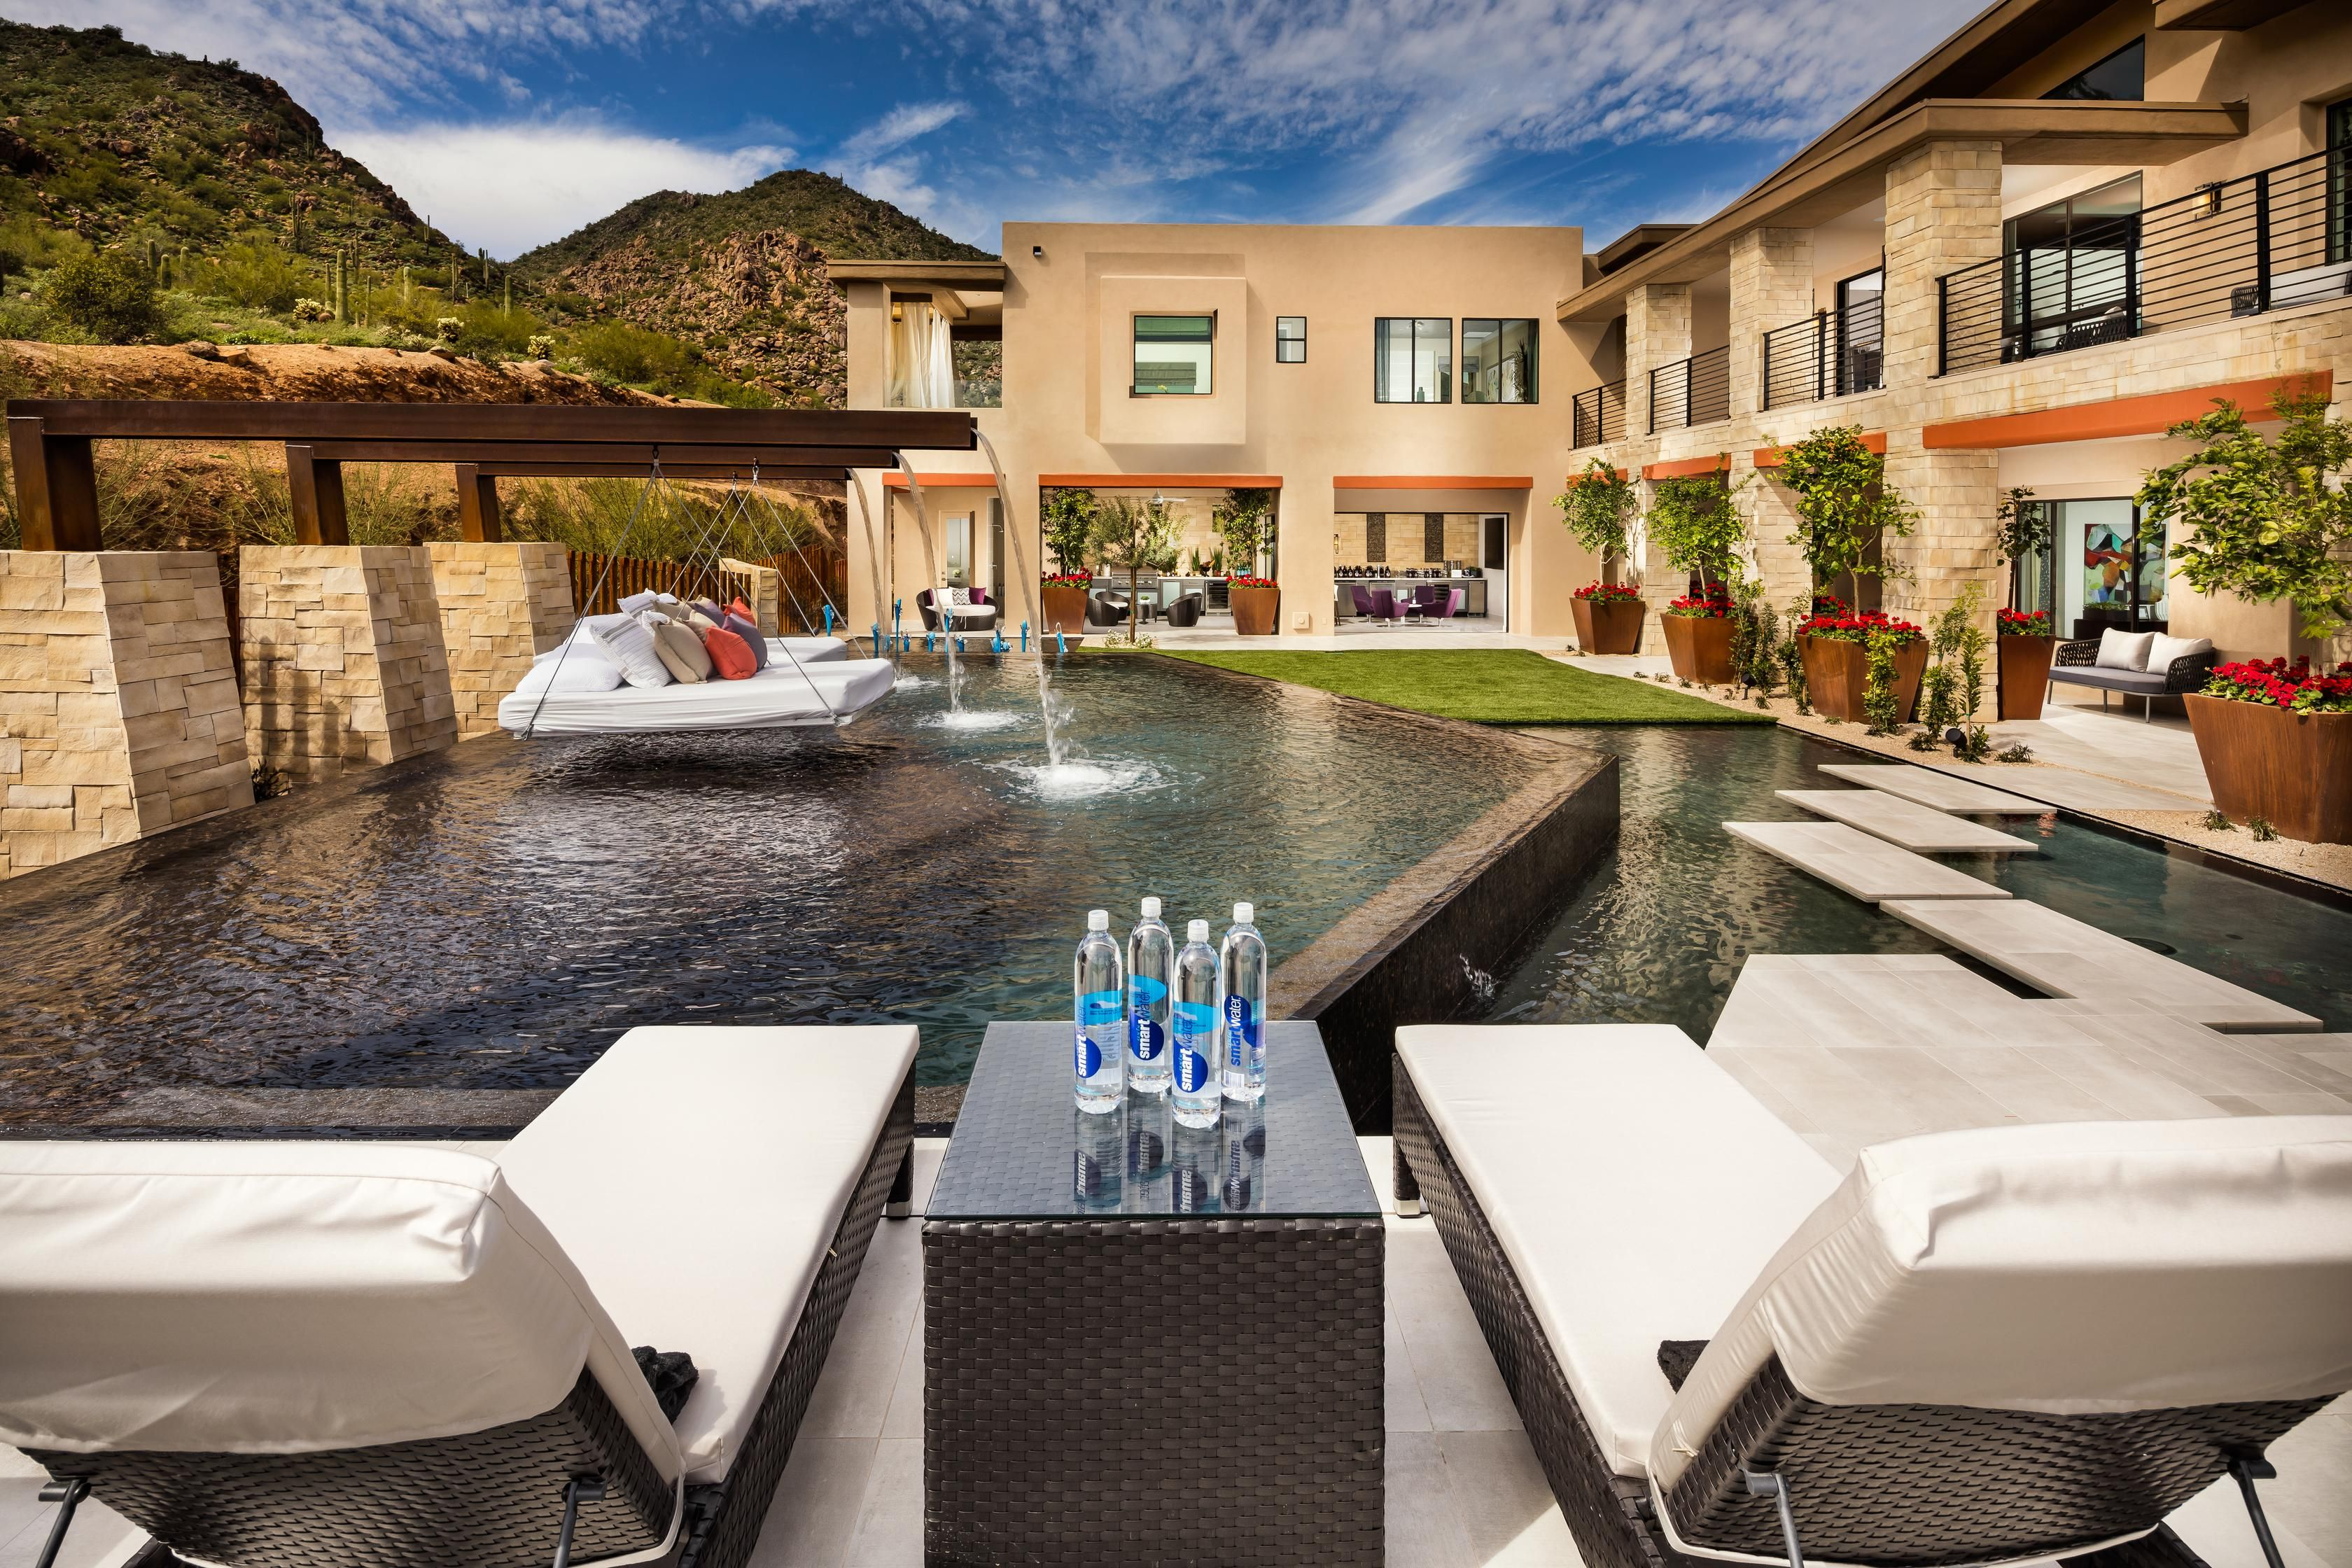 A Stunning Pool And Patio Venue From The Adero Canyon Community In